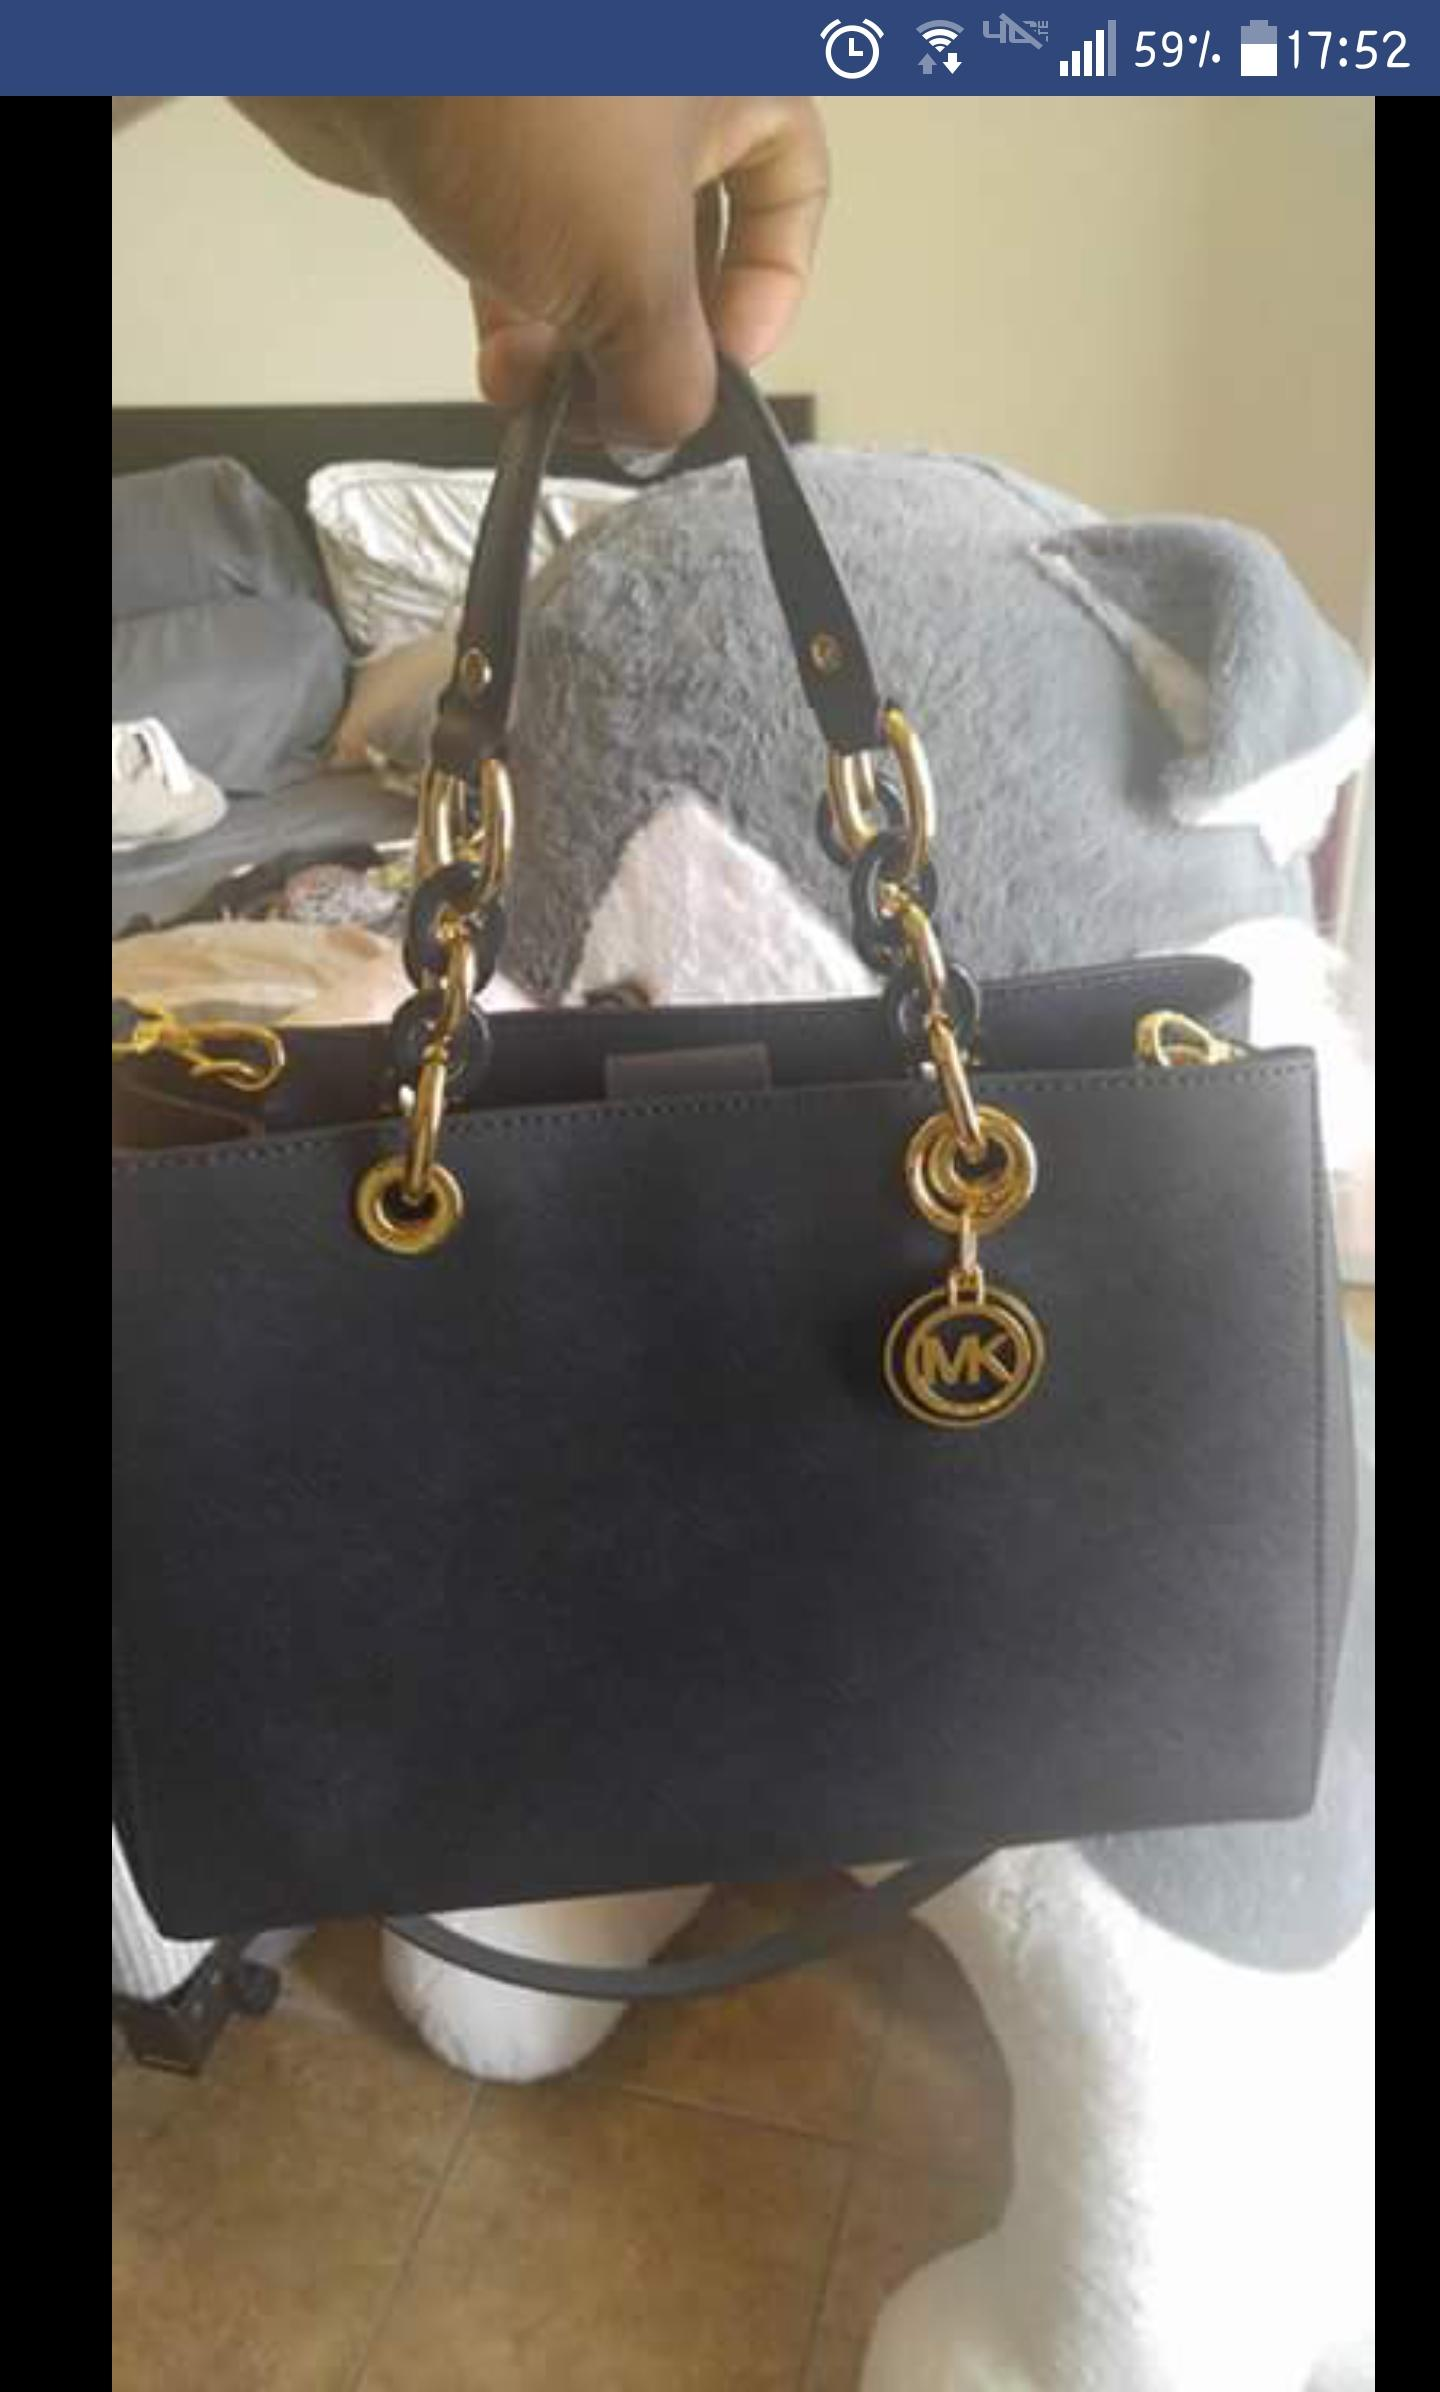 783b6f7f8 ... coupon for new zealand michael kors cynthia tote navy vessel bbabe  a0882 595b8 849c2